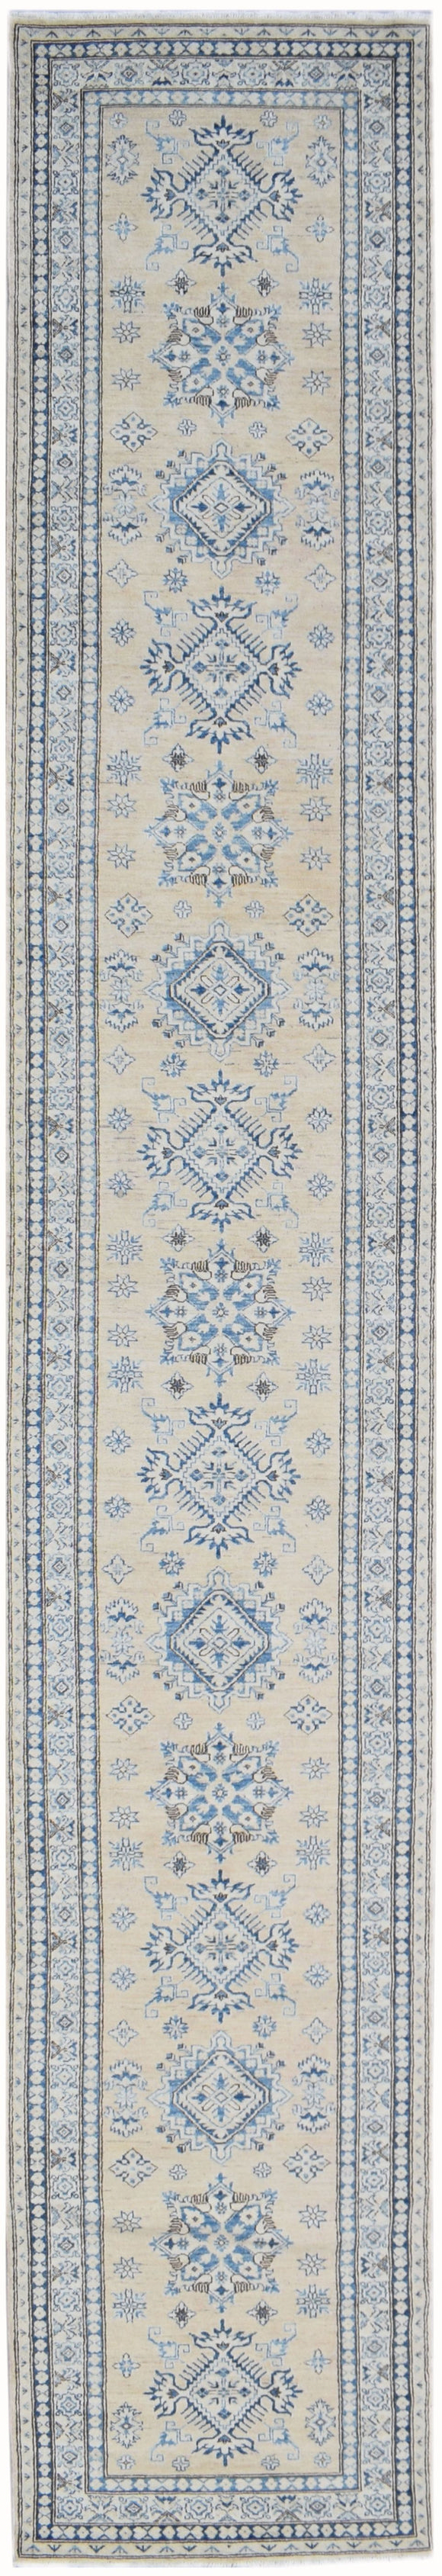 Handmade Super Sultan Collection Hallway Runner | 609 x 100 cm | 20' x 3'3